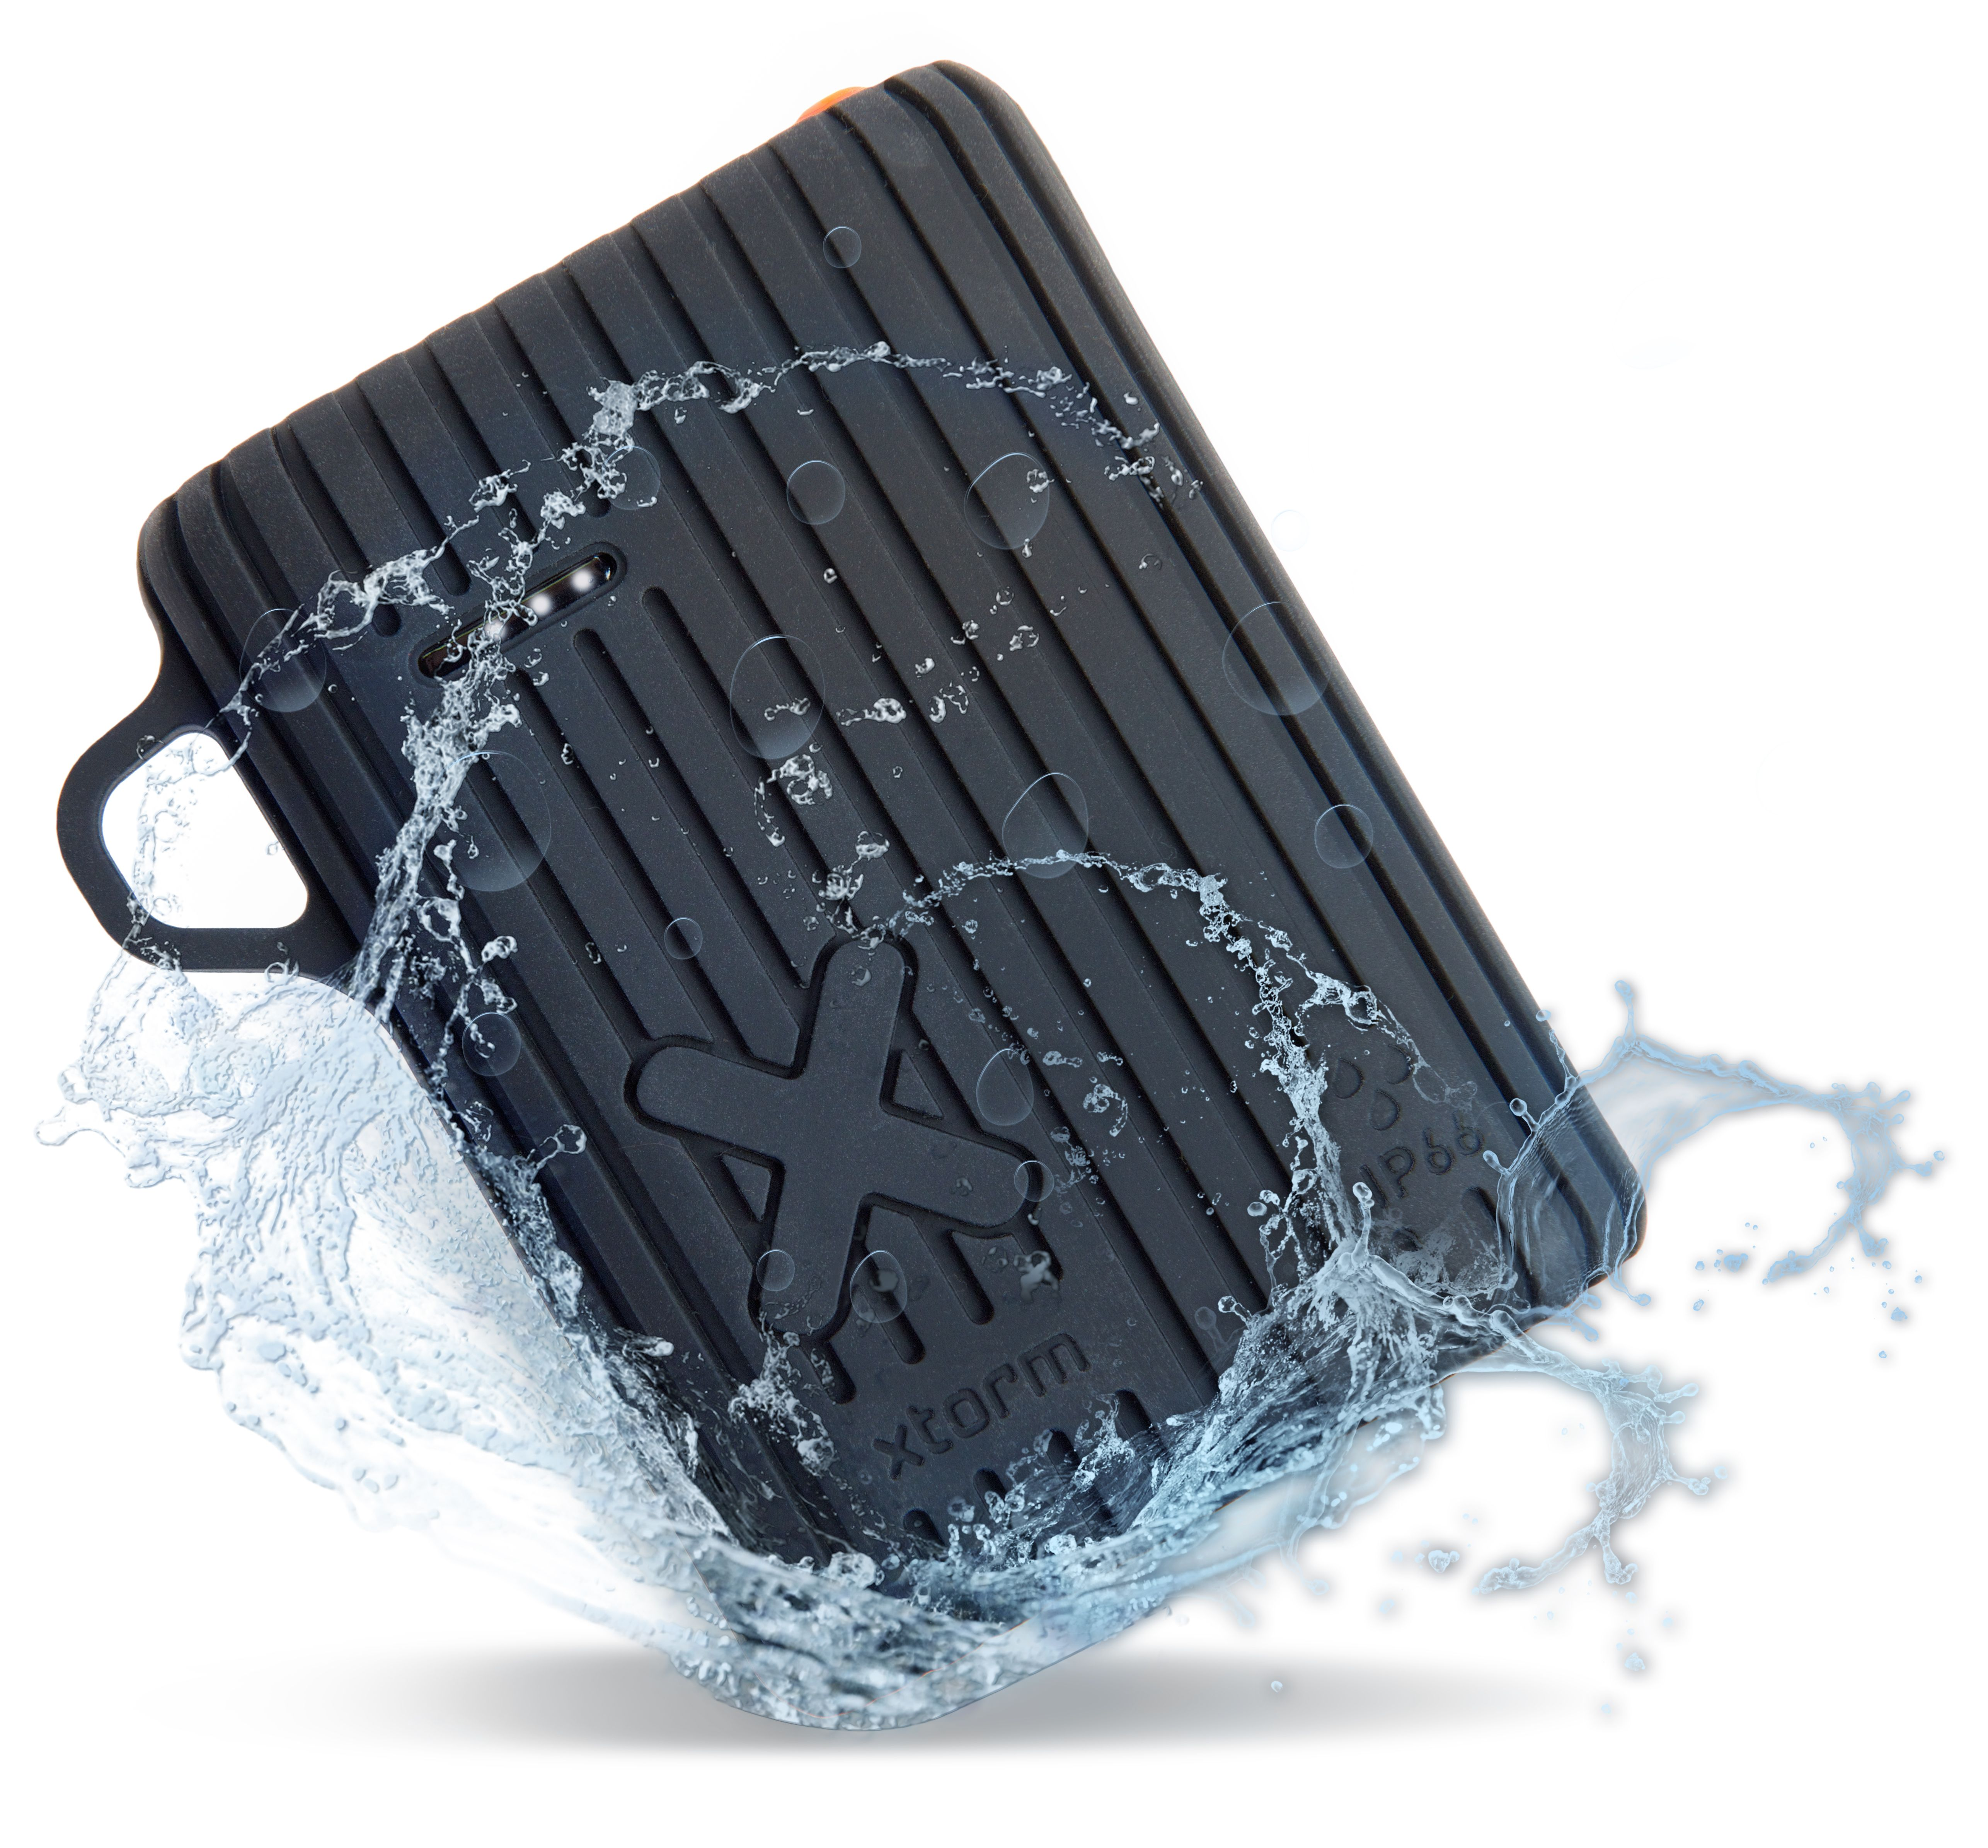 AL420_Power_Bank_Xtreme_10000_003_HR_Splash-1